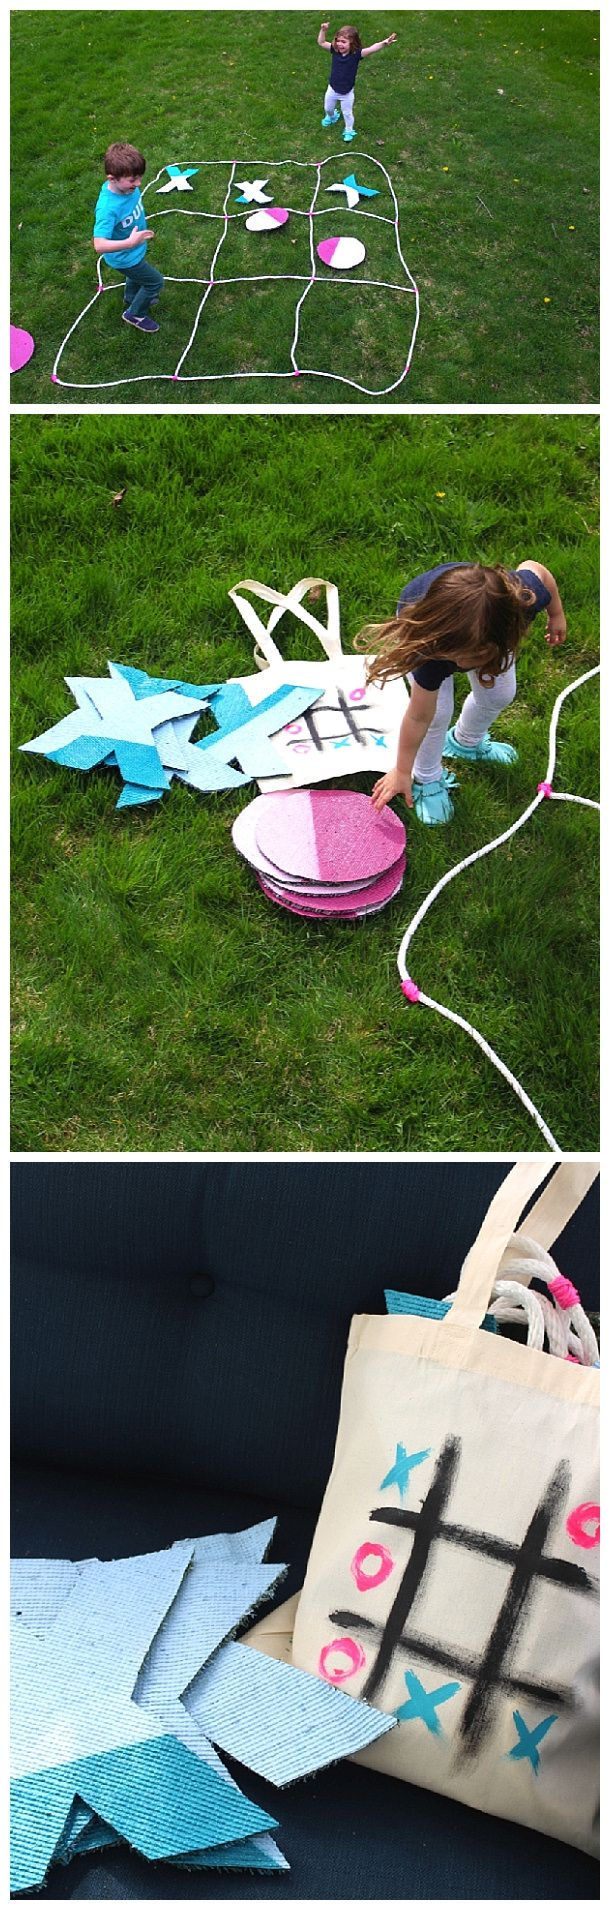 DIY Projects - Outdoor Games - Giant Do it Yourself Tic Tac Toe Game with Storage Bag Tutorial via Cloudy Day Gray